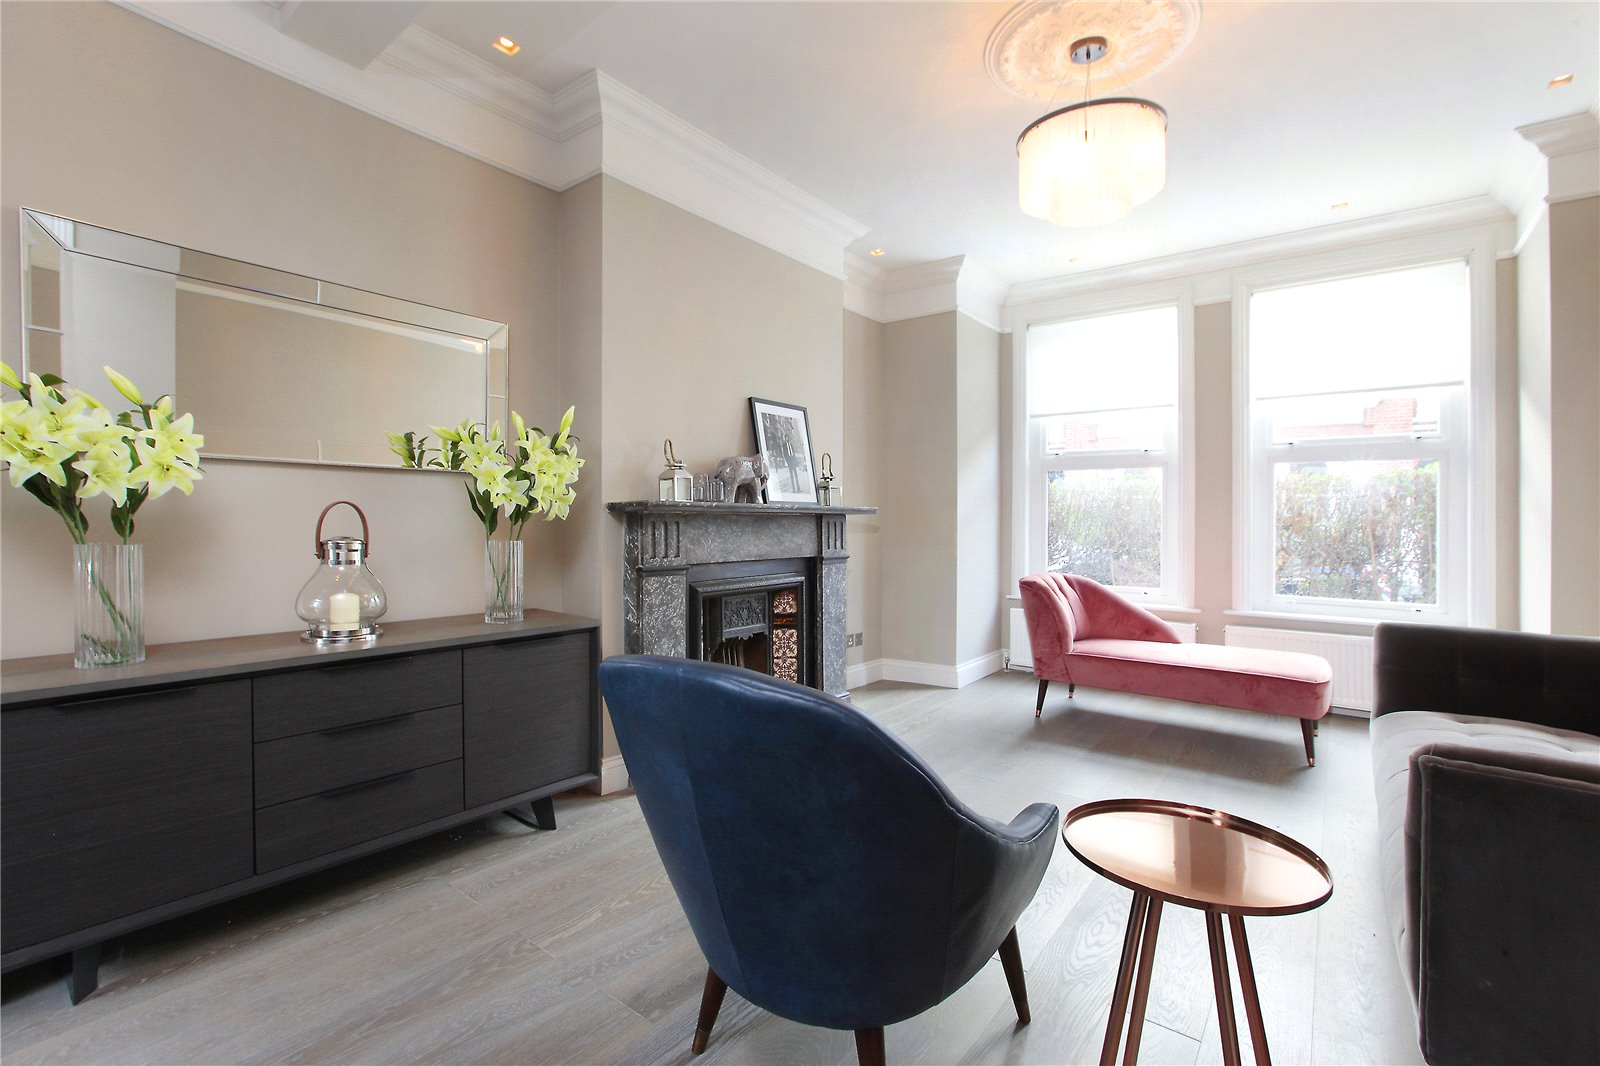 4 Bedrooms House for sale in Dinsmore Road, Balham, London, SW12